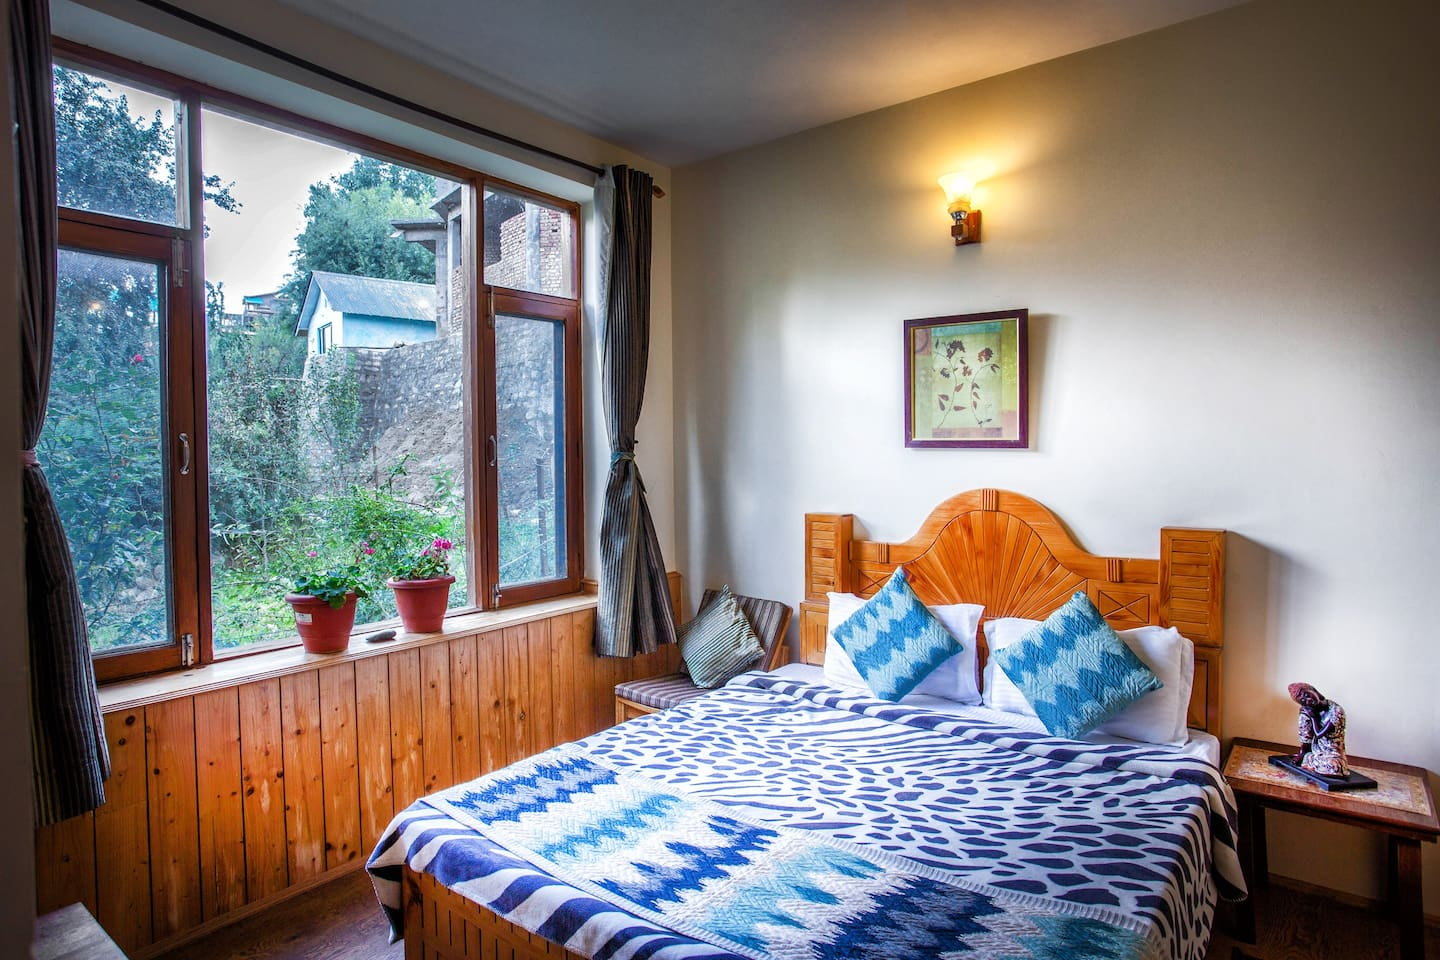 Deluxe room, beautiful views of peak mountains from comfort of your bed